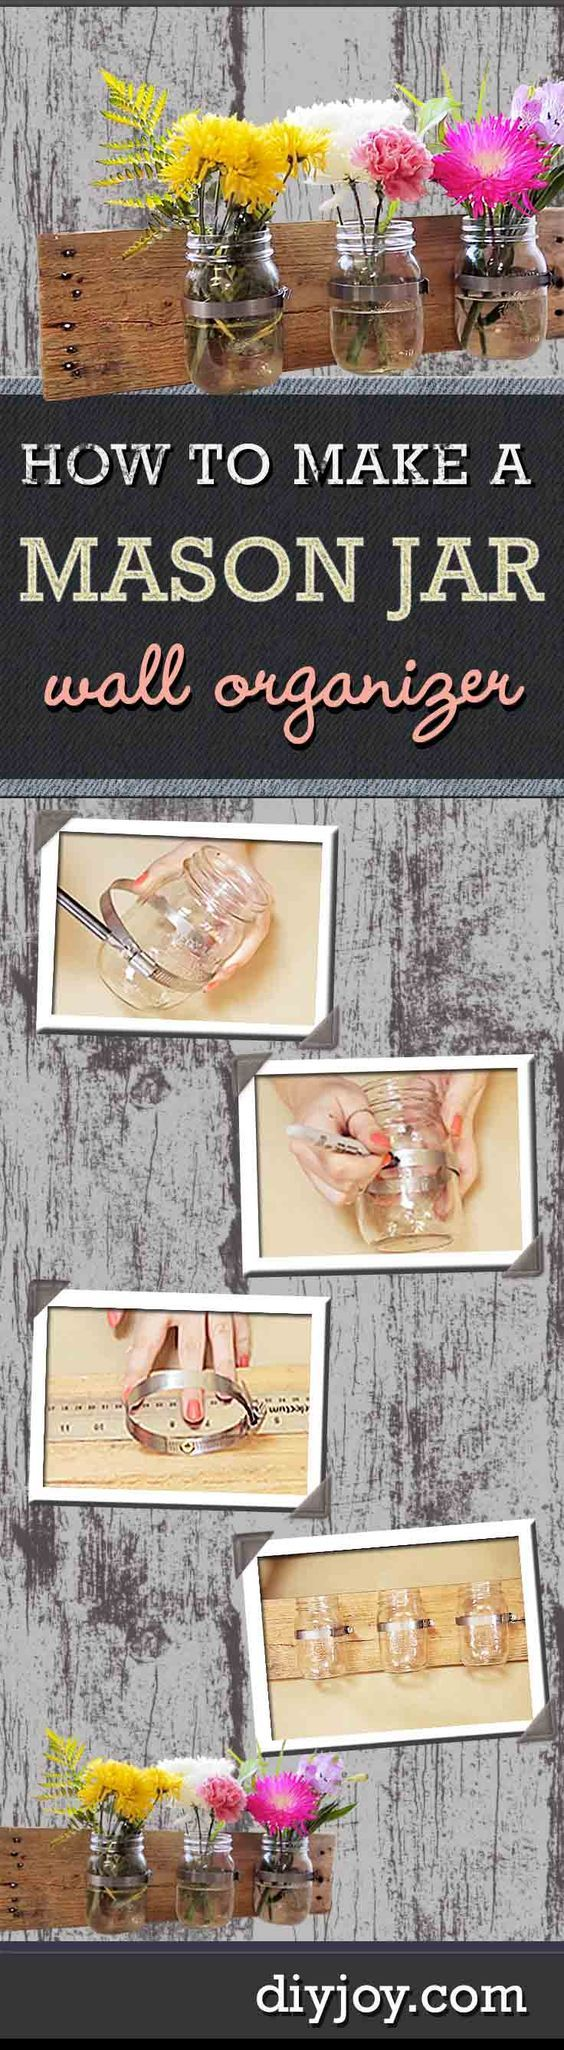 DIY Rustic Home Decor on a Budget   Storage Solutions for the Home   Mason Jar DIY Wall Organizer   DIY Projects and Crafts by DIY JOY: